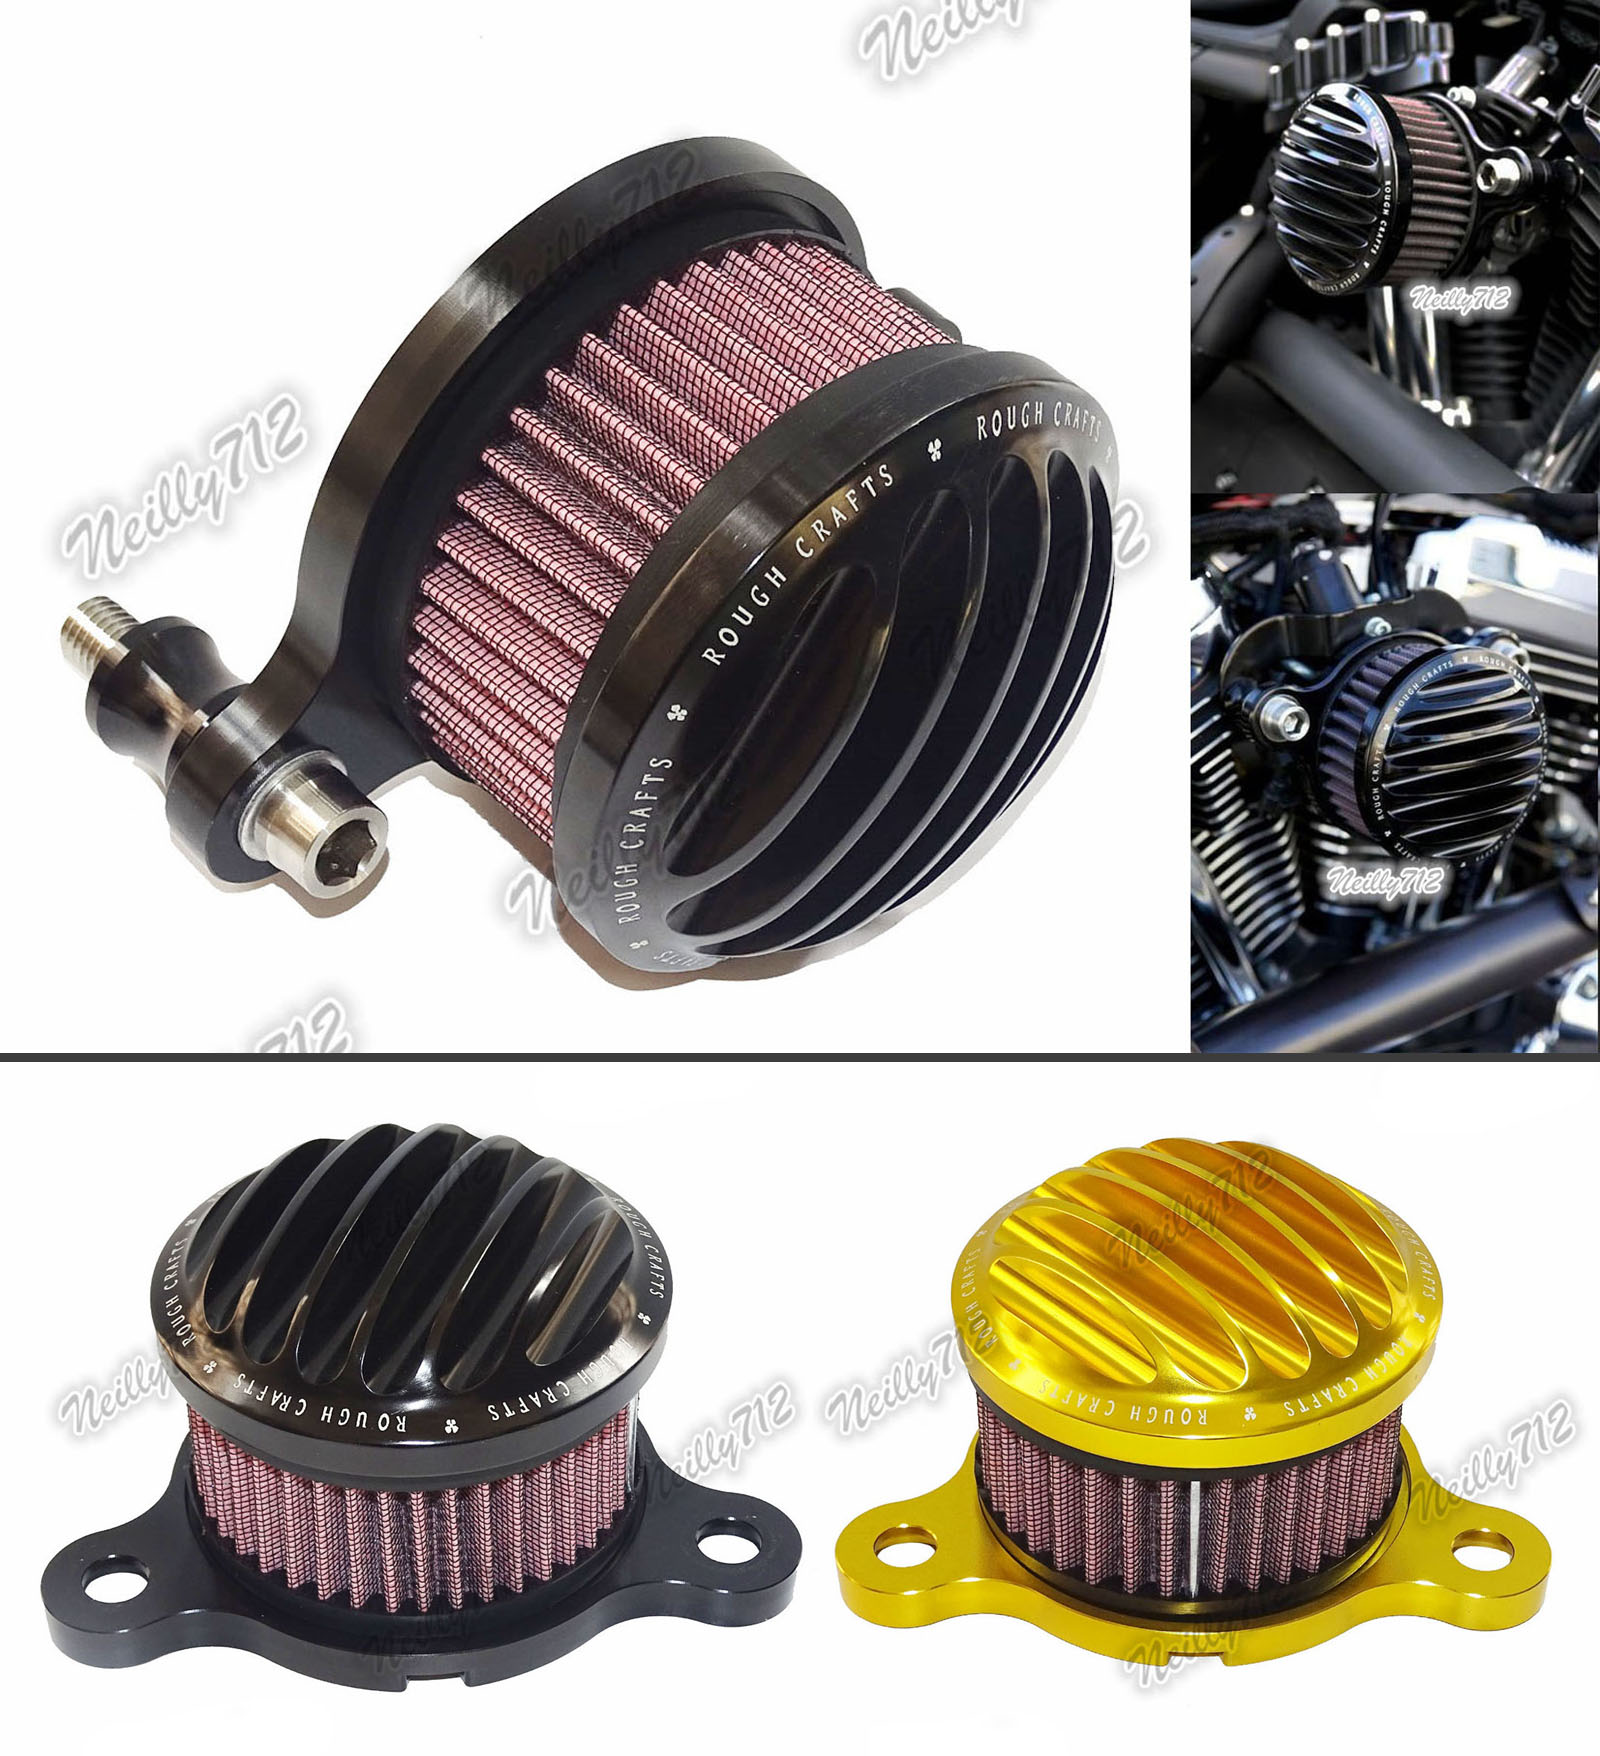 Motorcycle CNC Air Cleaner Intake Filter System Black For 2004 2005 2006 2007 2008-2015 Harley Davidson Sportster XL 883 1200 black cnc cut air cleaner trim cover for harley iron 883 sportster xl883r xl1200